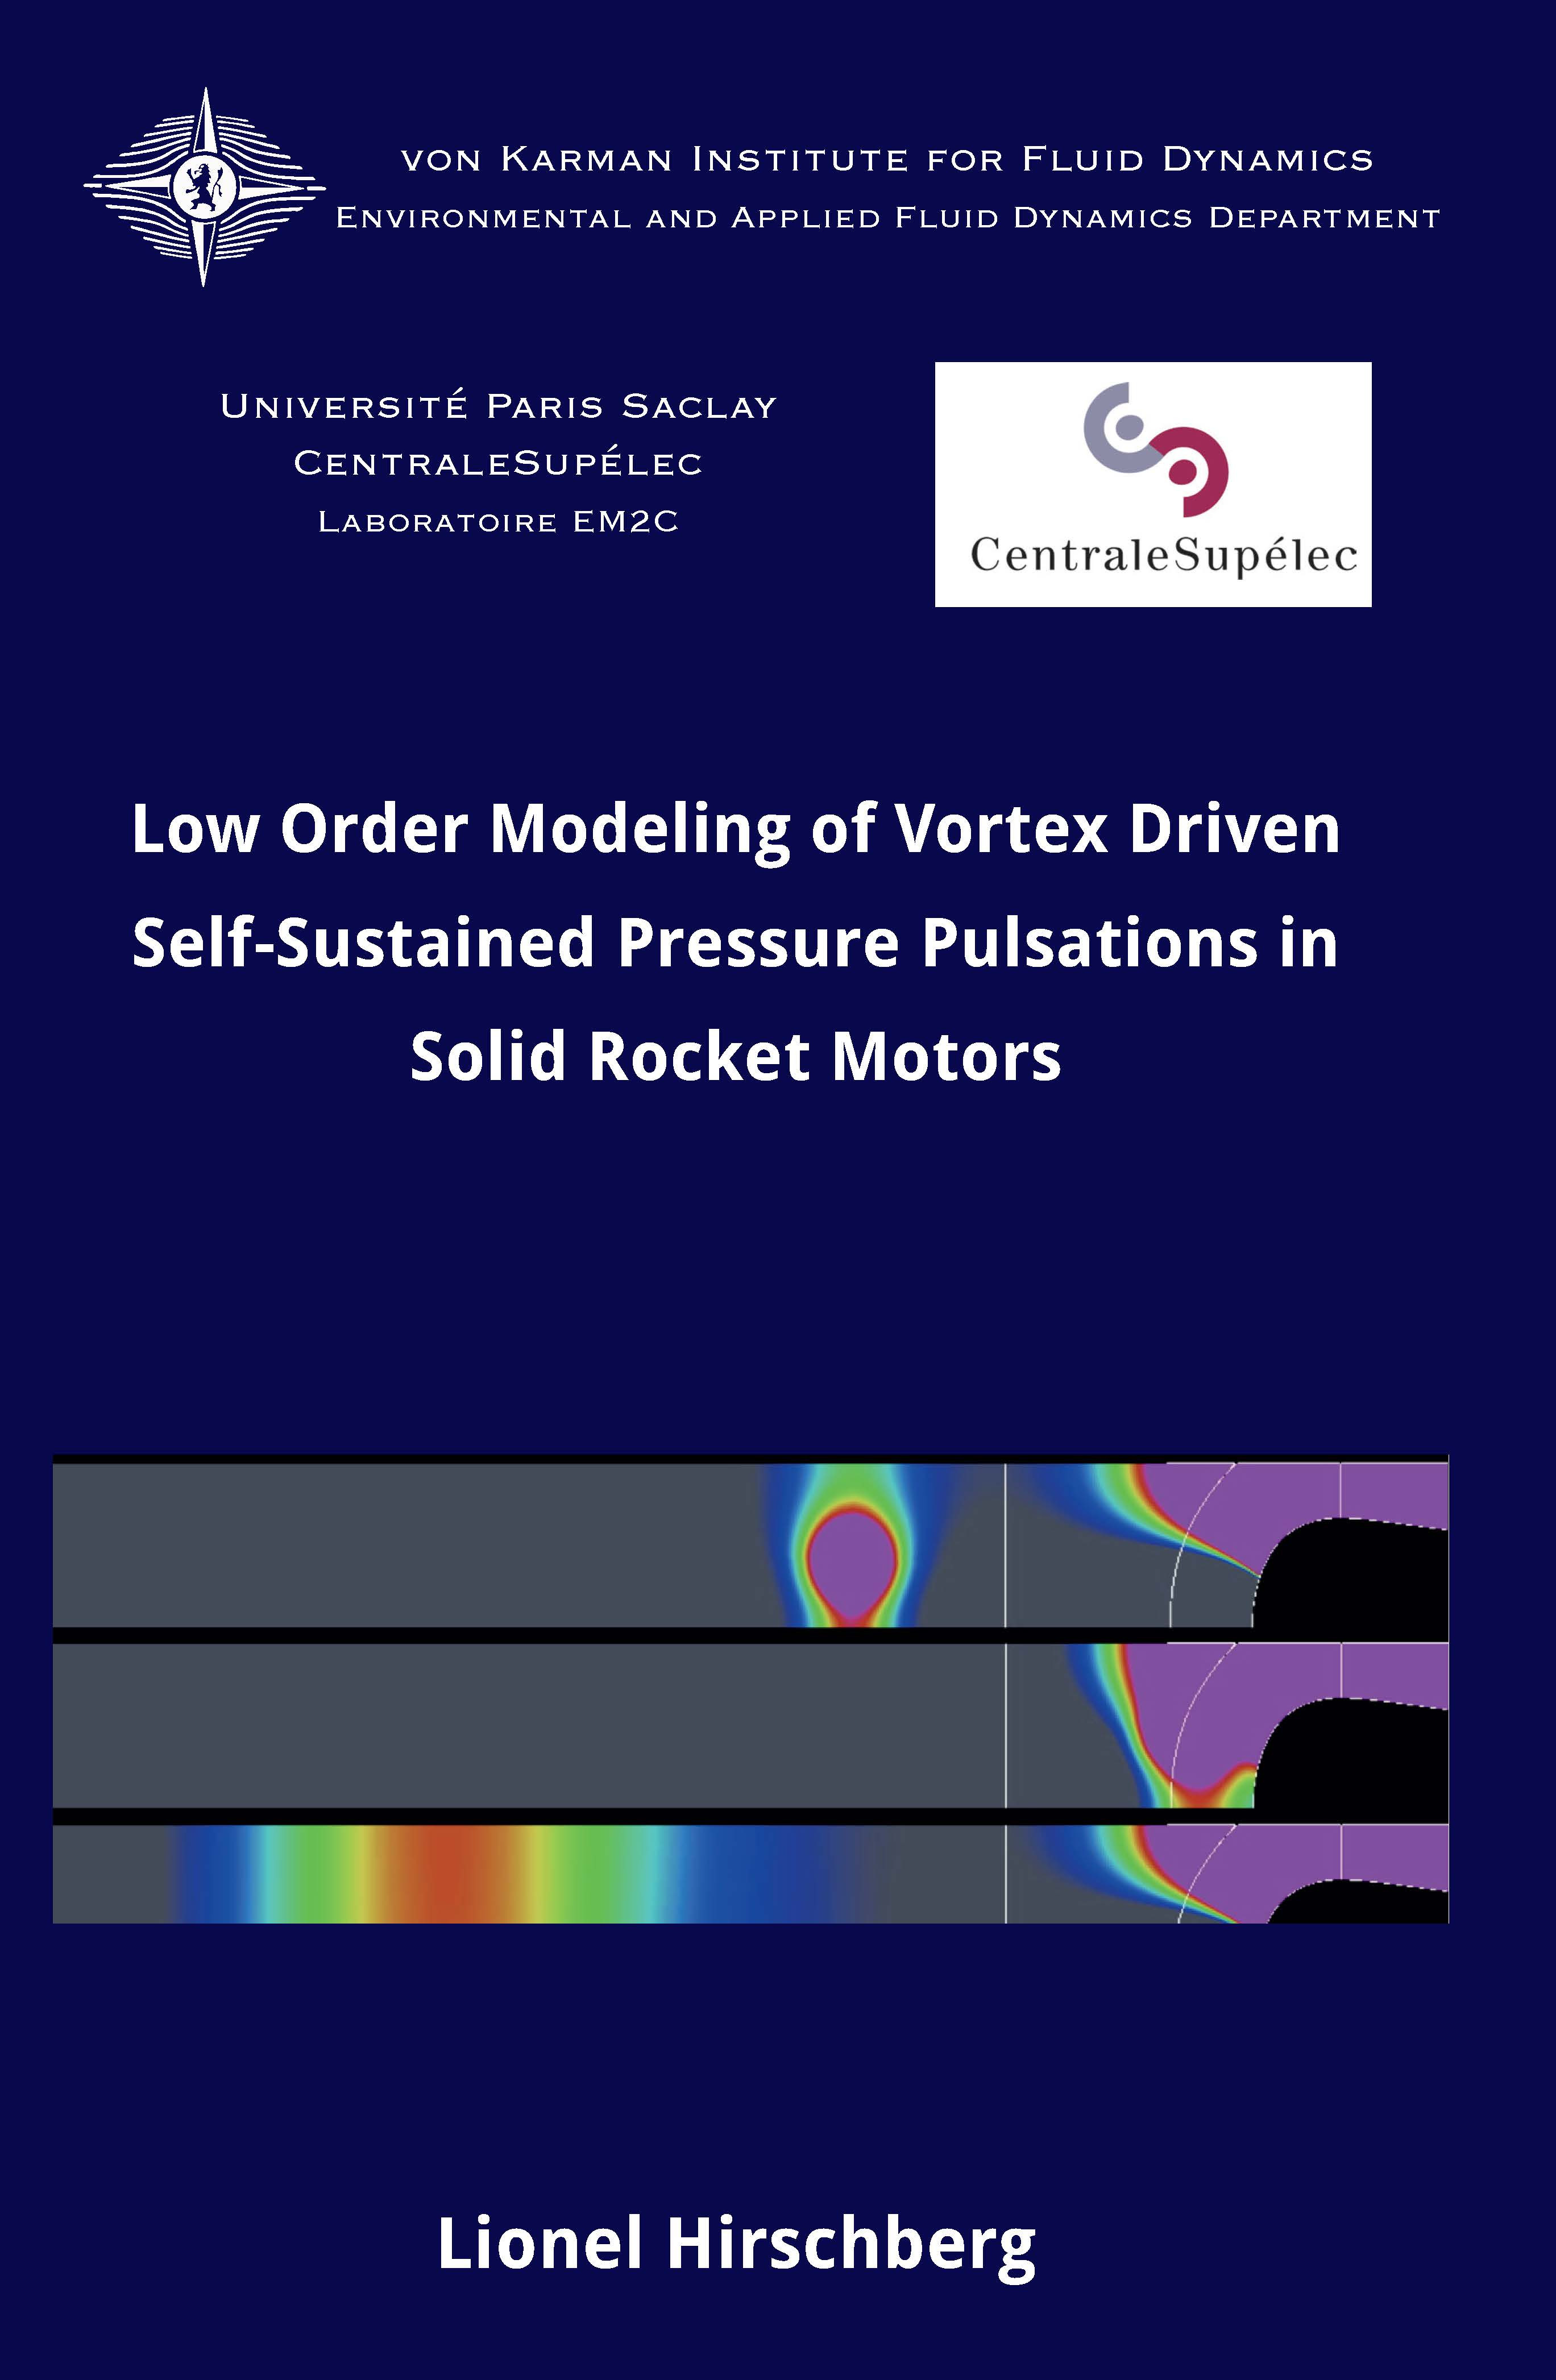 Low order modeling of vortex driven self-sustained pressure pulsations in solid rocket motors - Lionel Hirschberg - Ph.D. Thesis - Free download